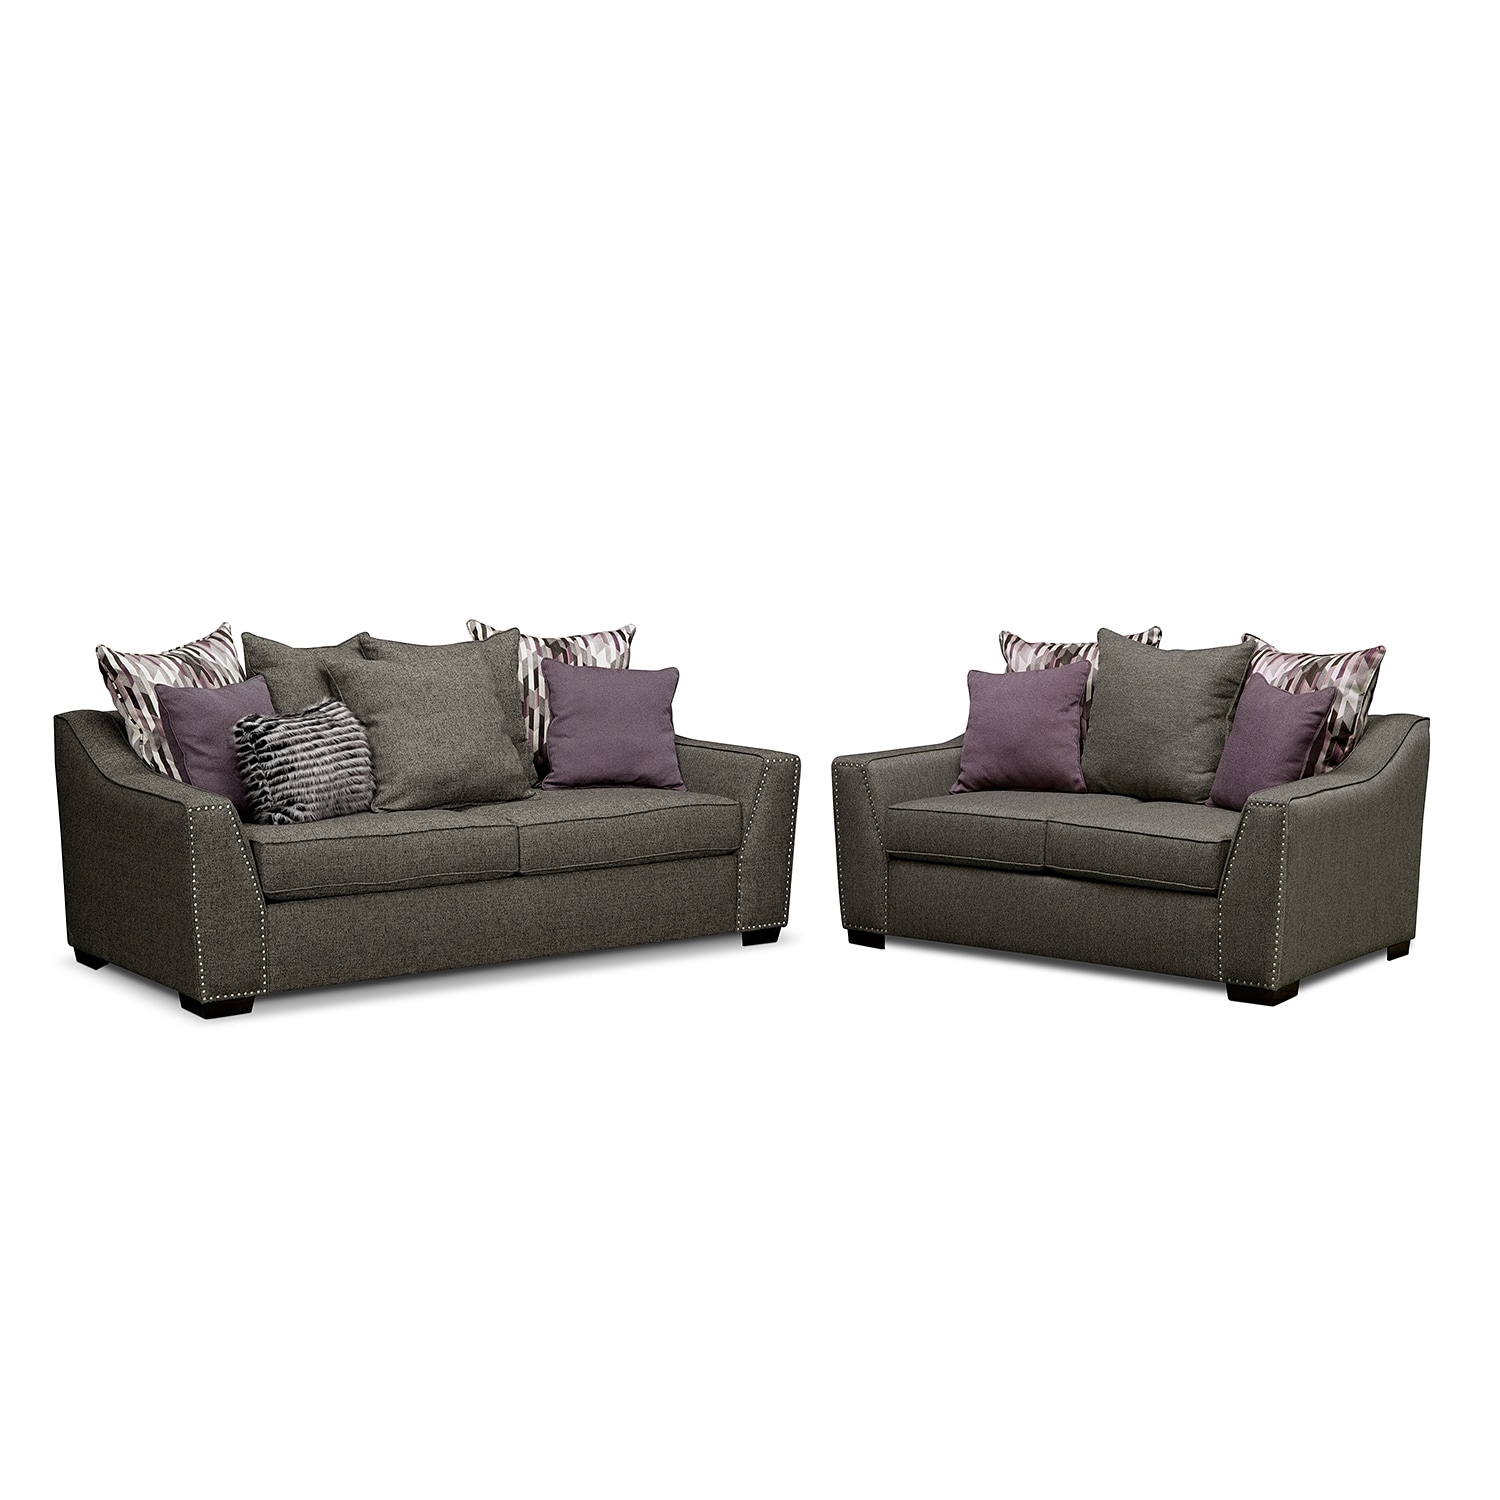 Living Room Furniture - Ritz 2 Pc. Living Room